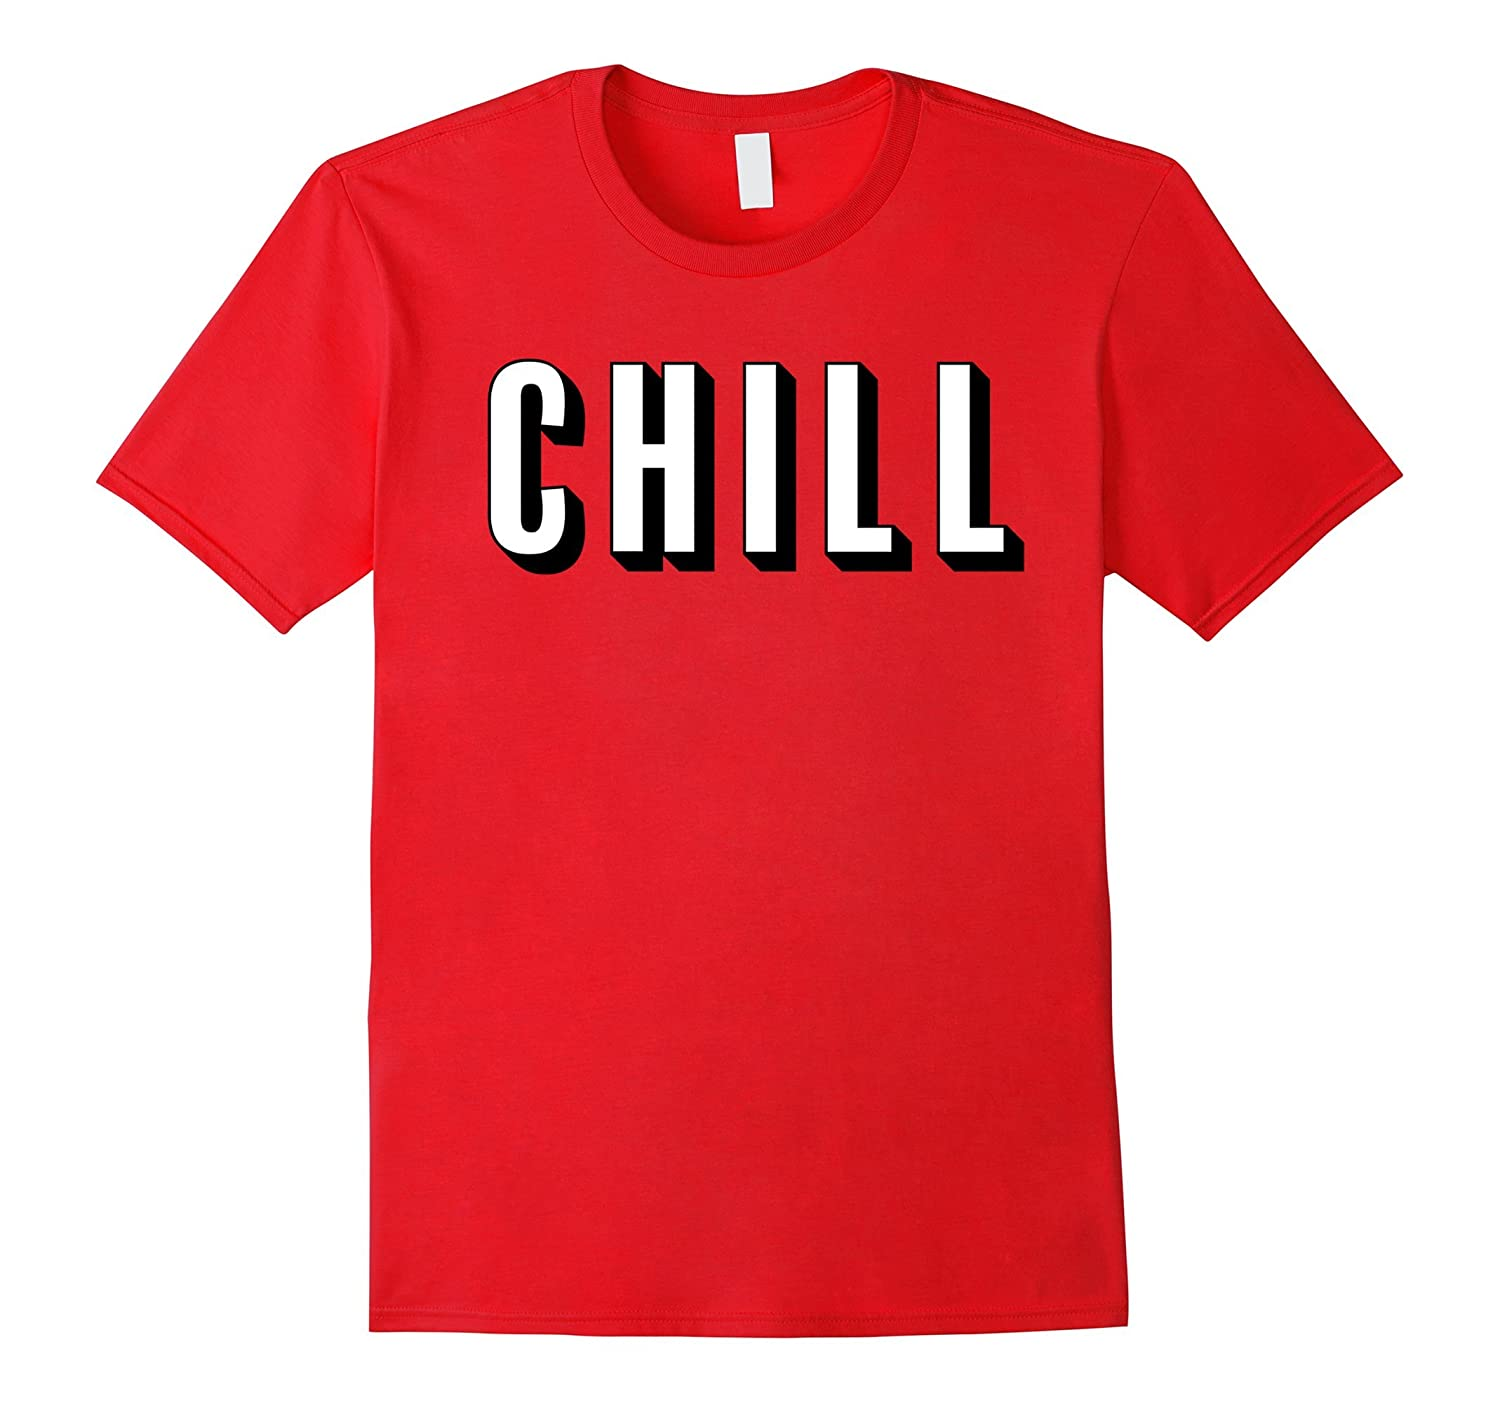 Chill - T-Shirt for Ballers, Hustlers, and relaxing-FL